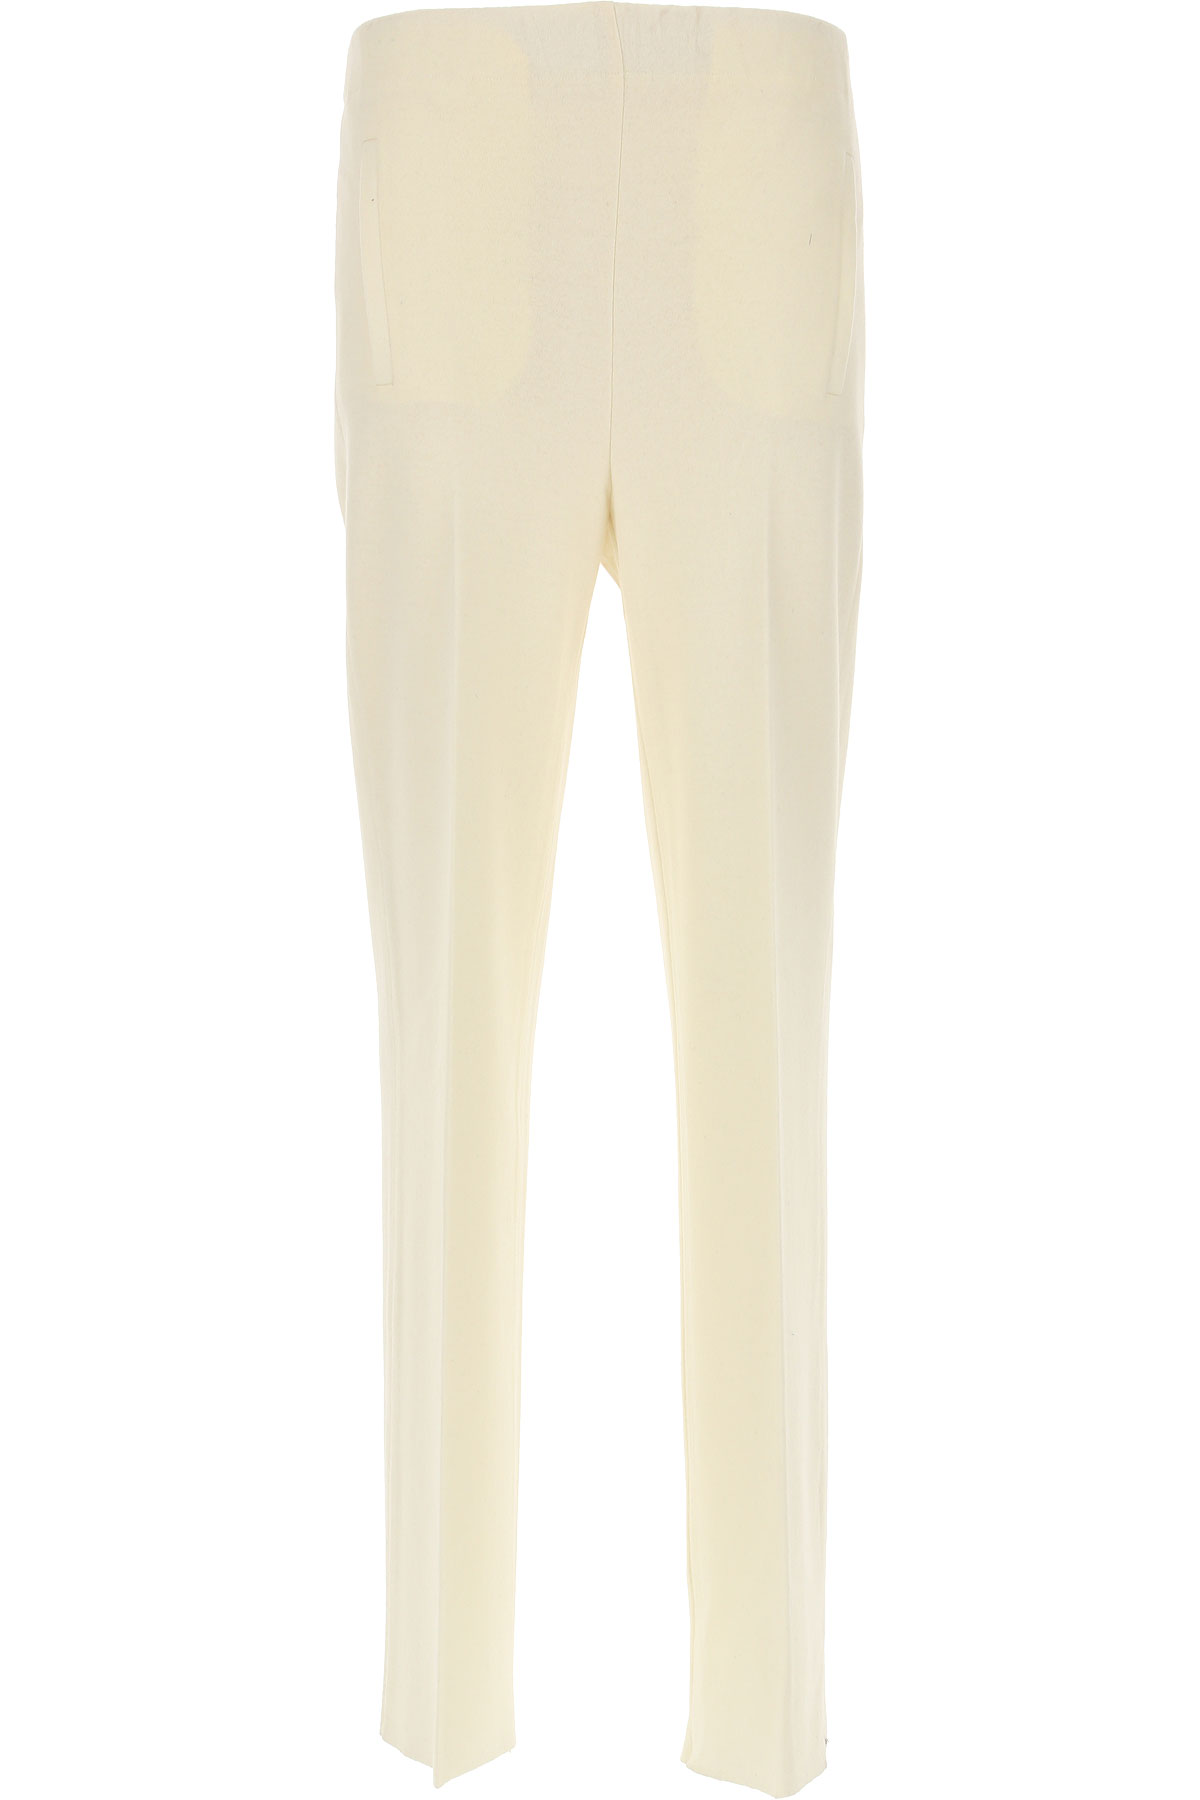 Image of Jucca Pants for Women, Cream, Wool, 2017, 24 26